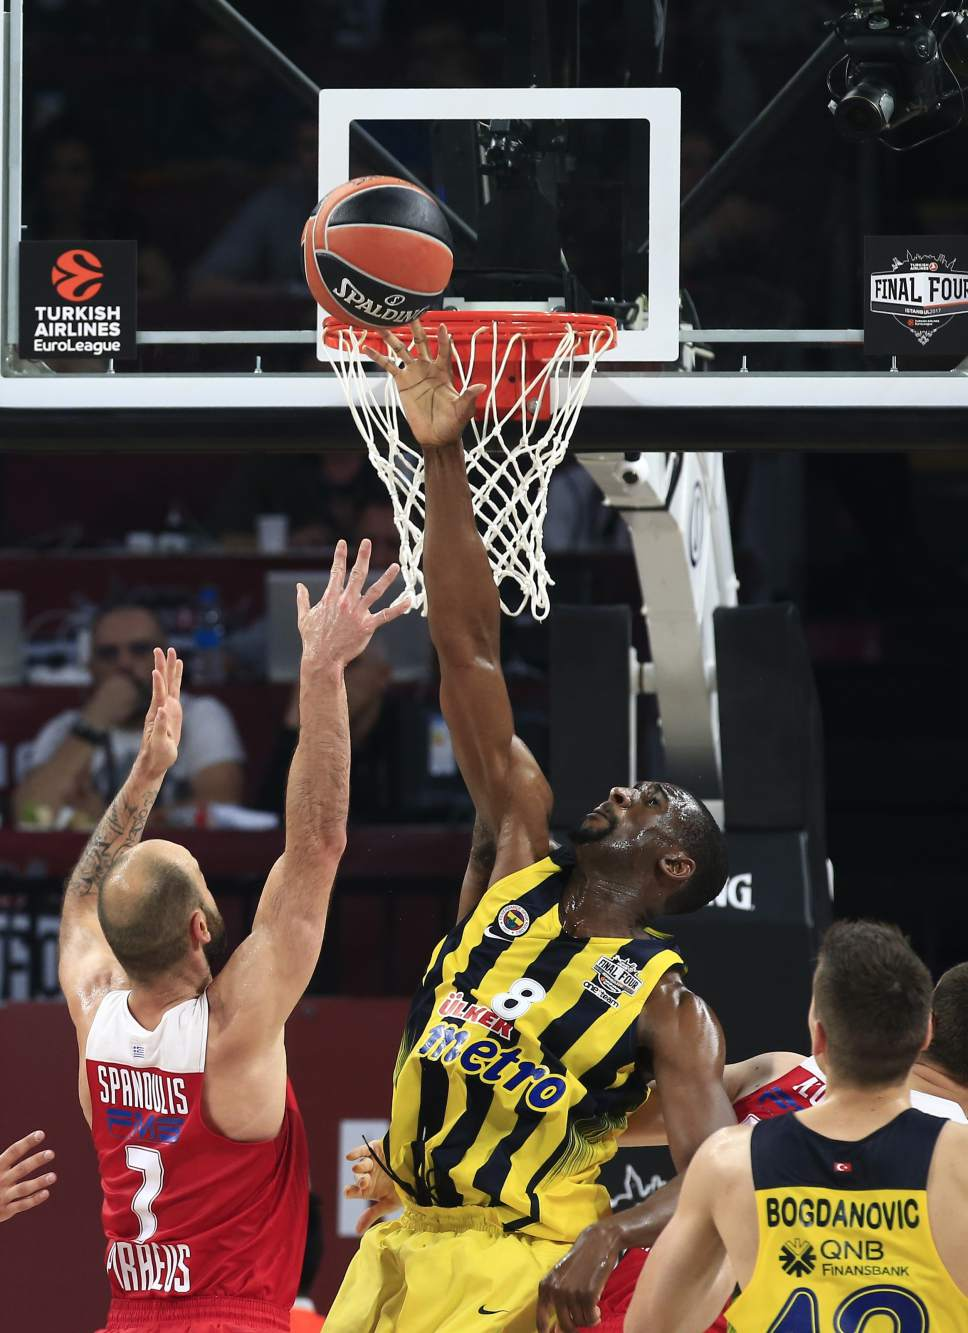 Fenerbahce's Ekpe Udoh, right, blocks a shot by Olympiakos' Vassilis Spanoulis during their Final Four Euroleague final basketball match at Sinan Erdem Dome in Istanbul, Sunday, May 21, 2017. (AP Photo/Lefteris Pitarakis)